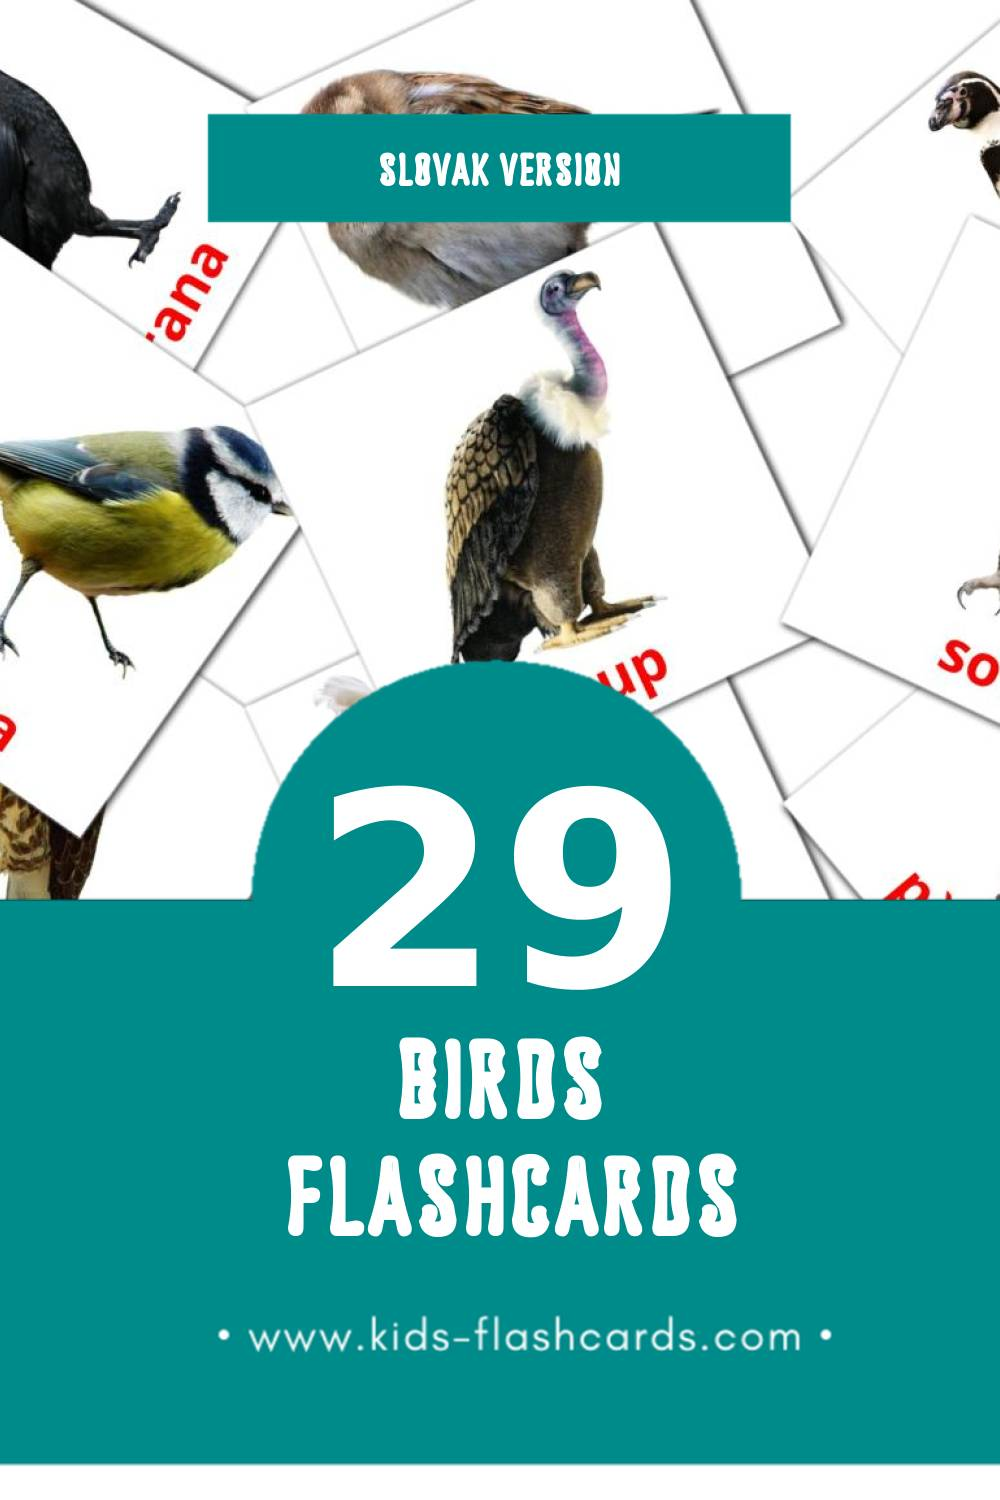 Visual Vtáky Flashcards for Toddlers (28 cards in Slovak)